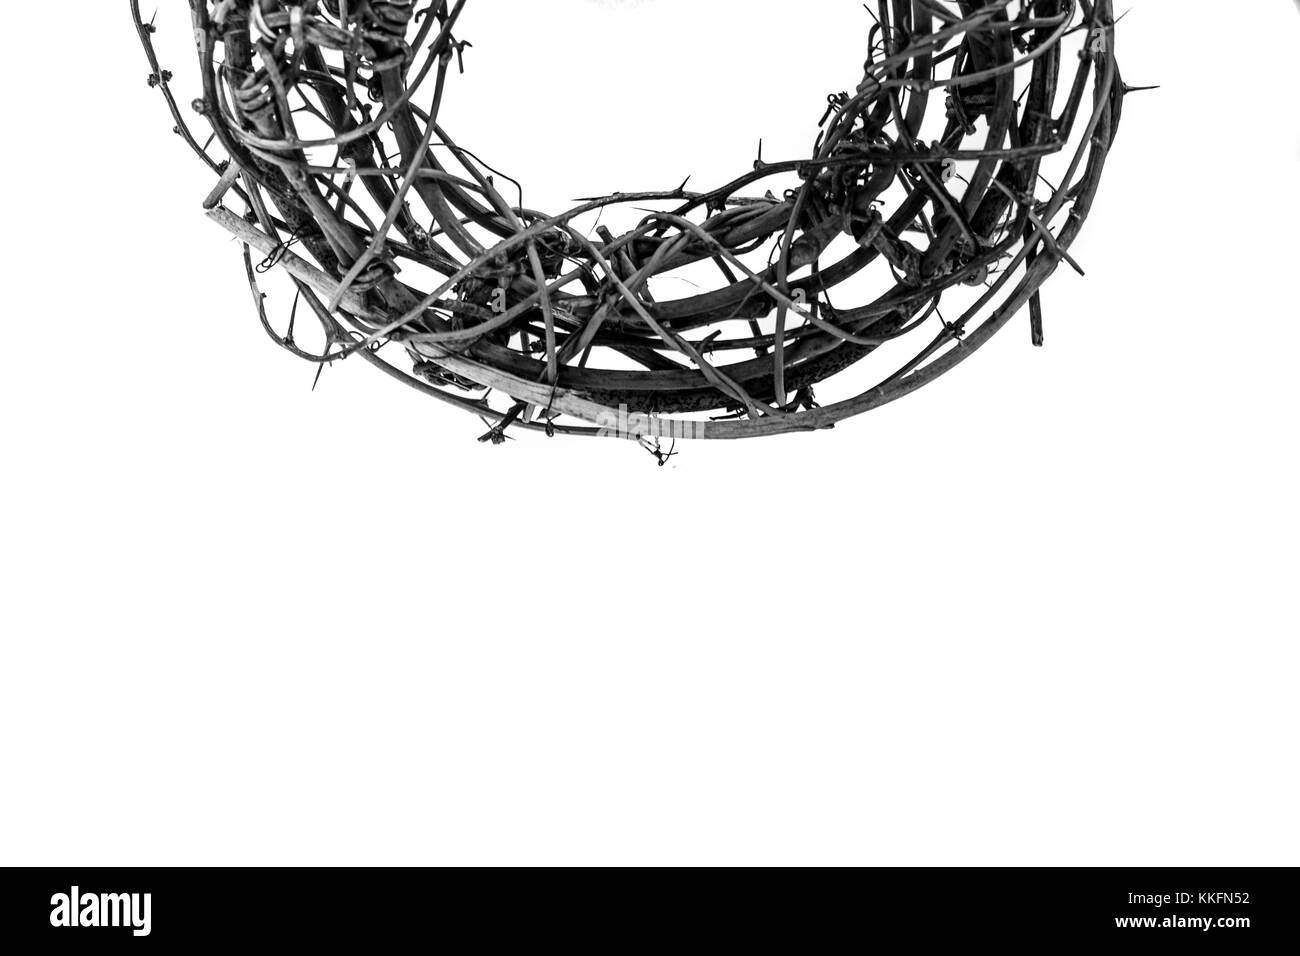 Crown Of Thorns As Worn By Jesus Christ In The Easter Passion Story During His